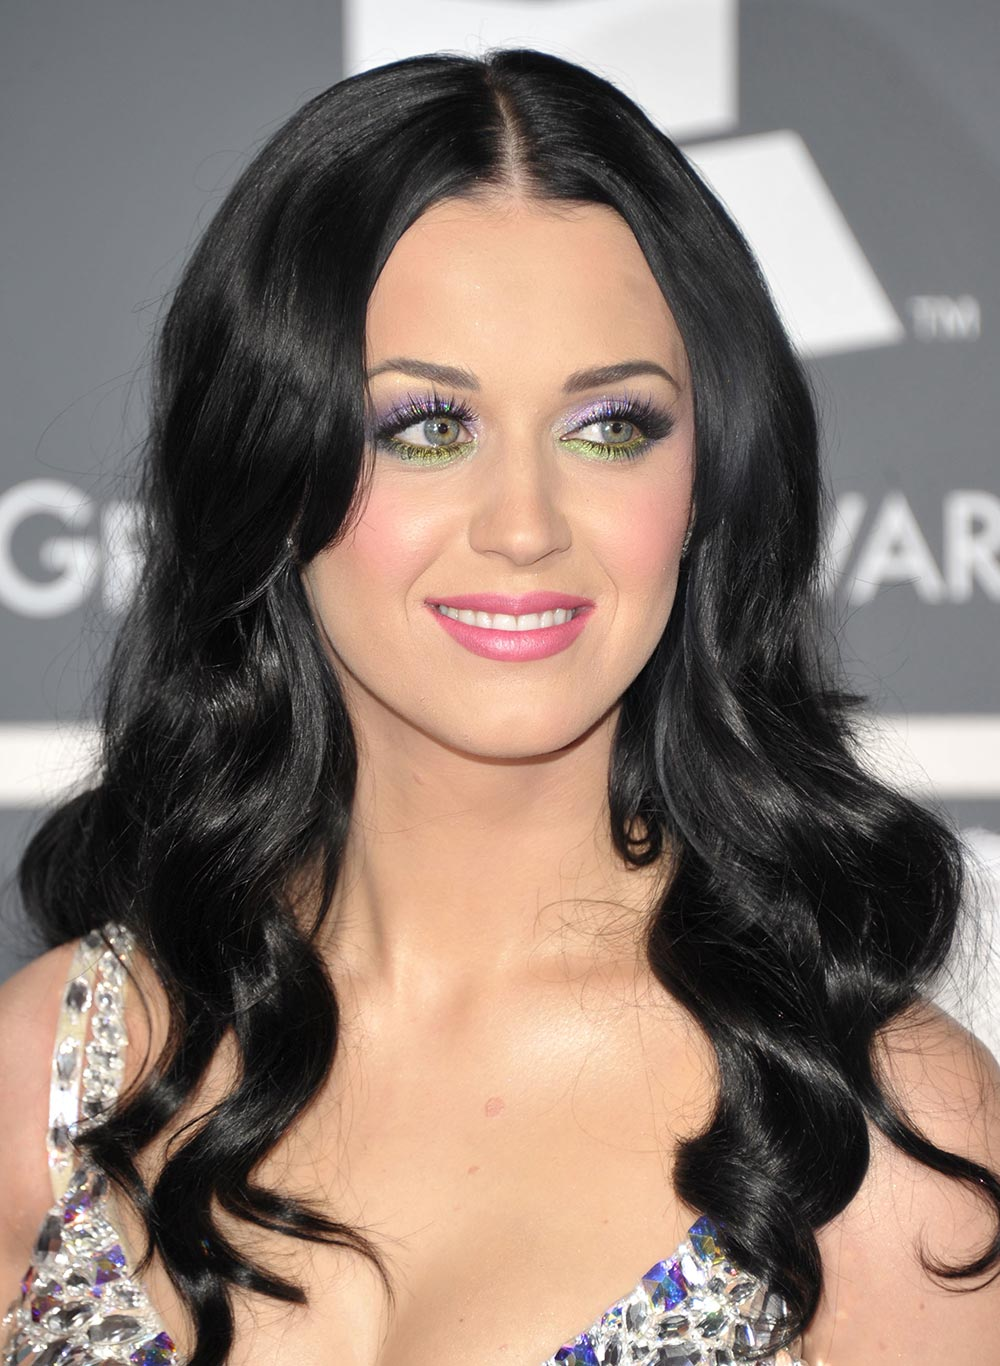 katy-perry-makeup-2011-grammy-awards